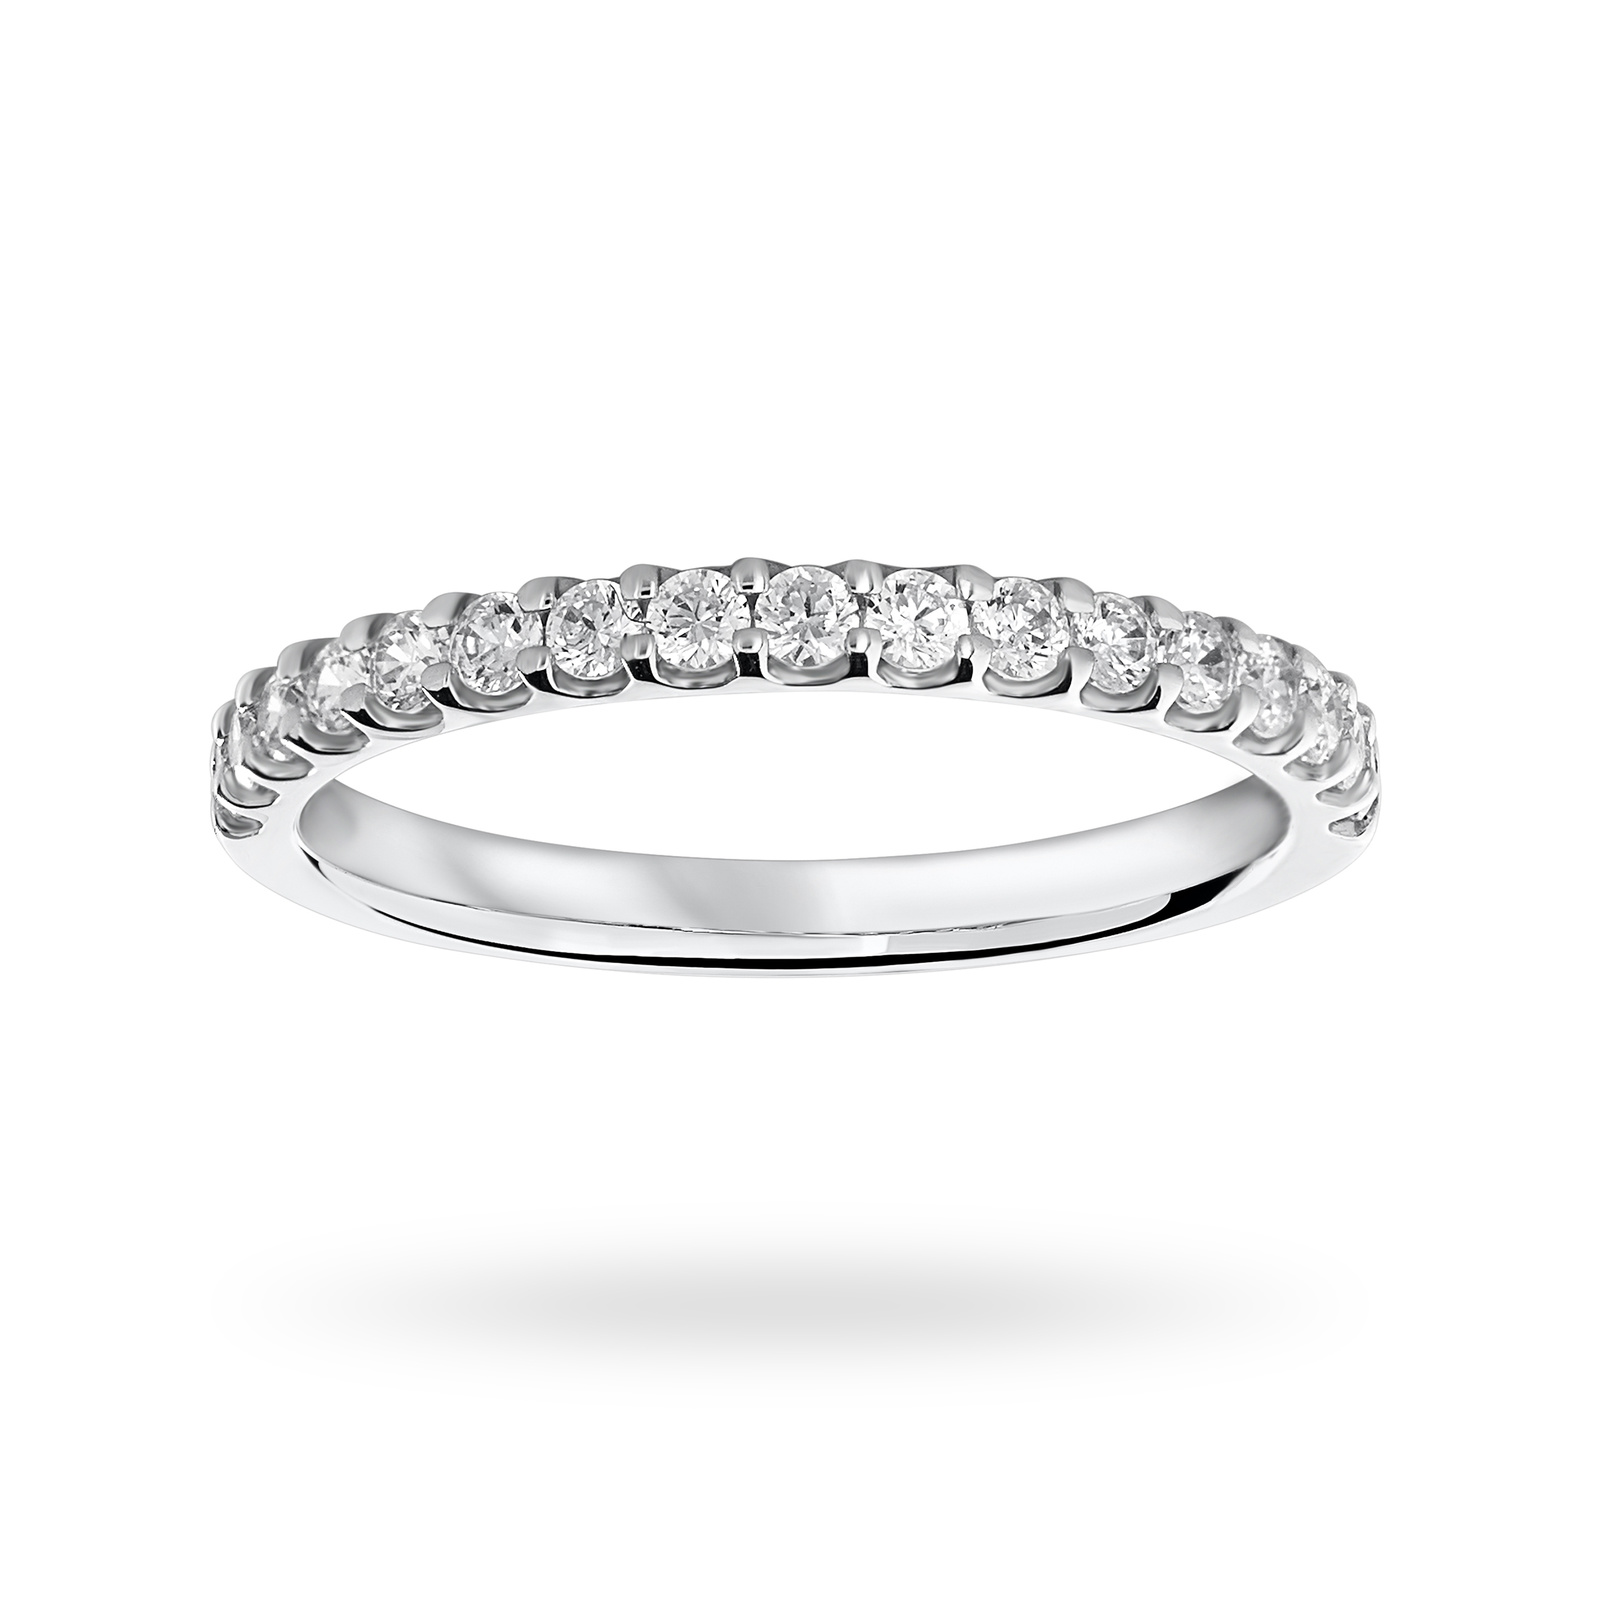 18 Carat White Gold 0.33 Carat Brilliant Cut Half Eternity